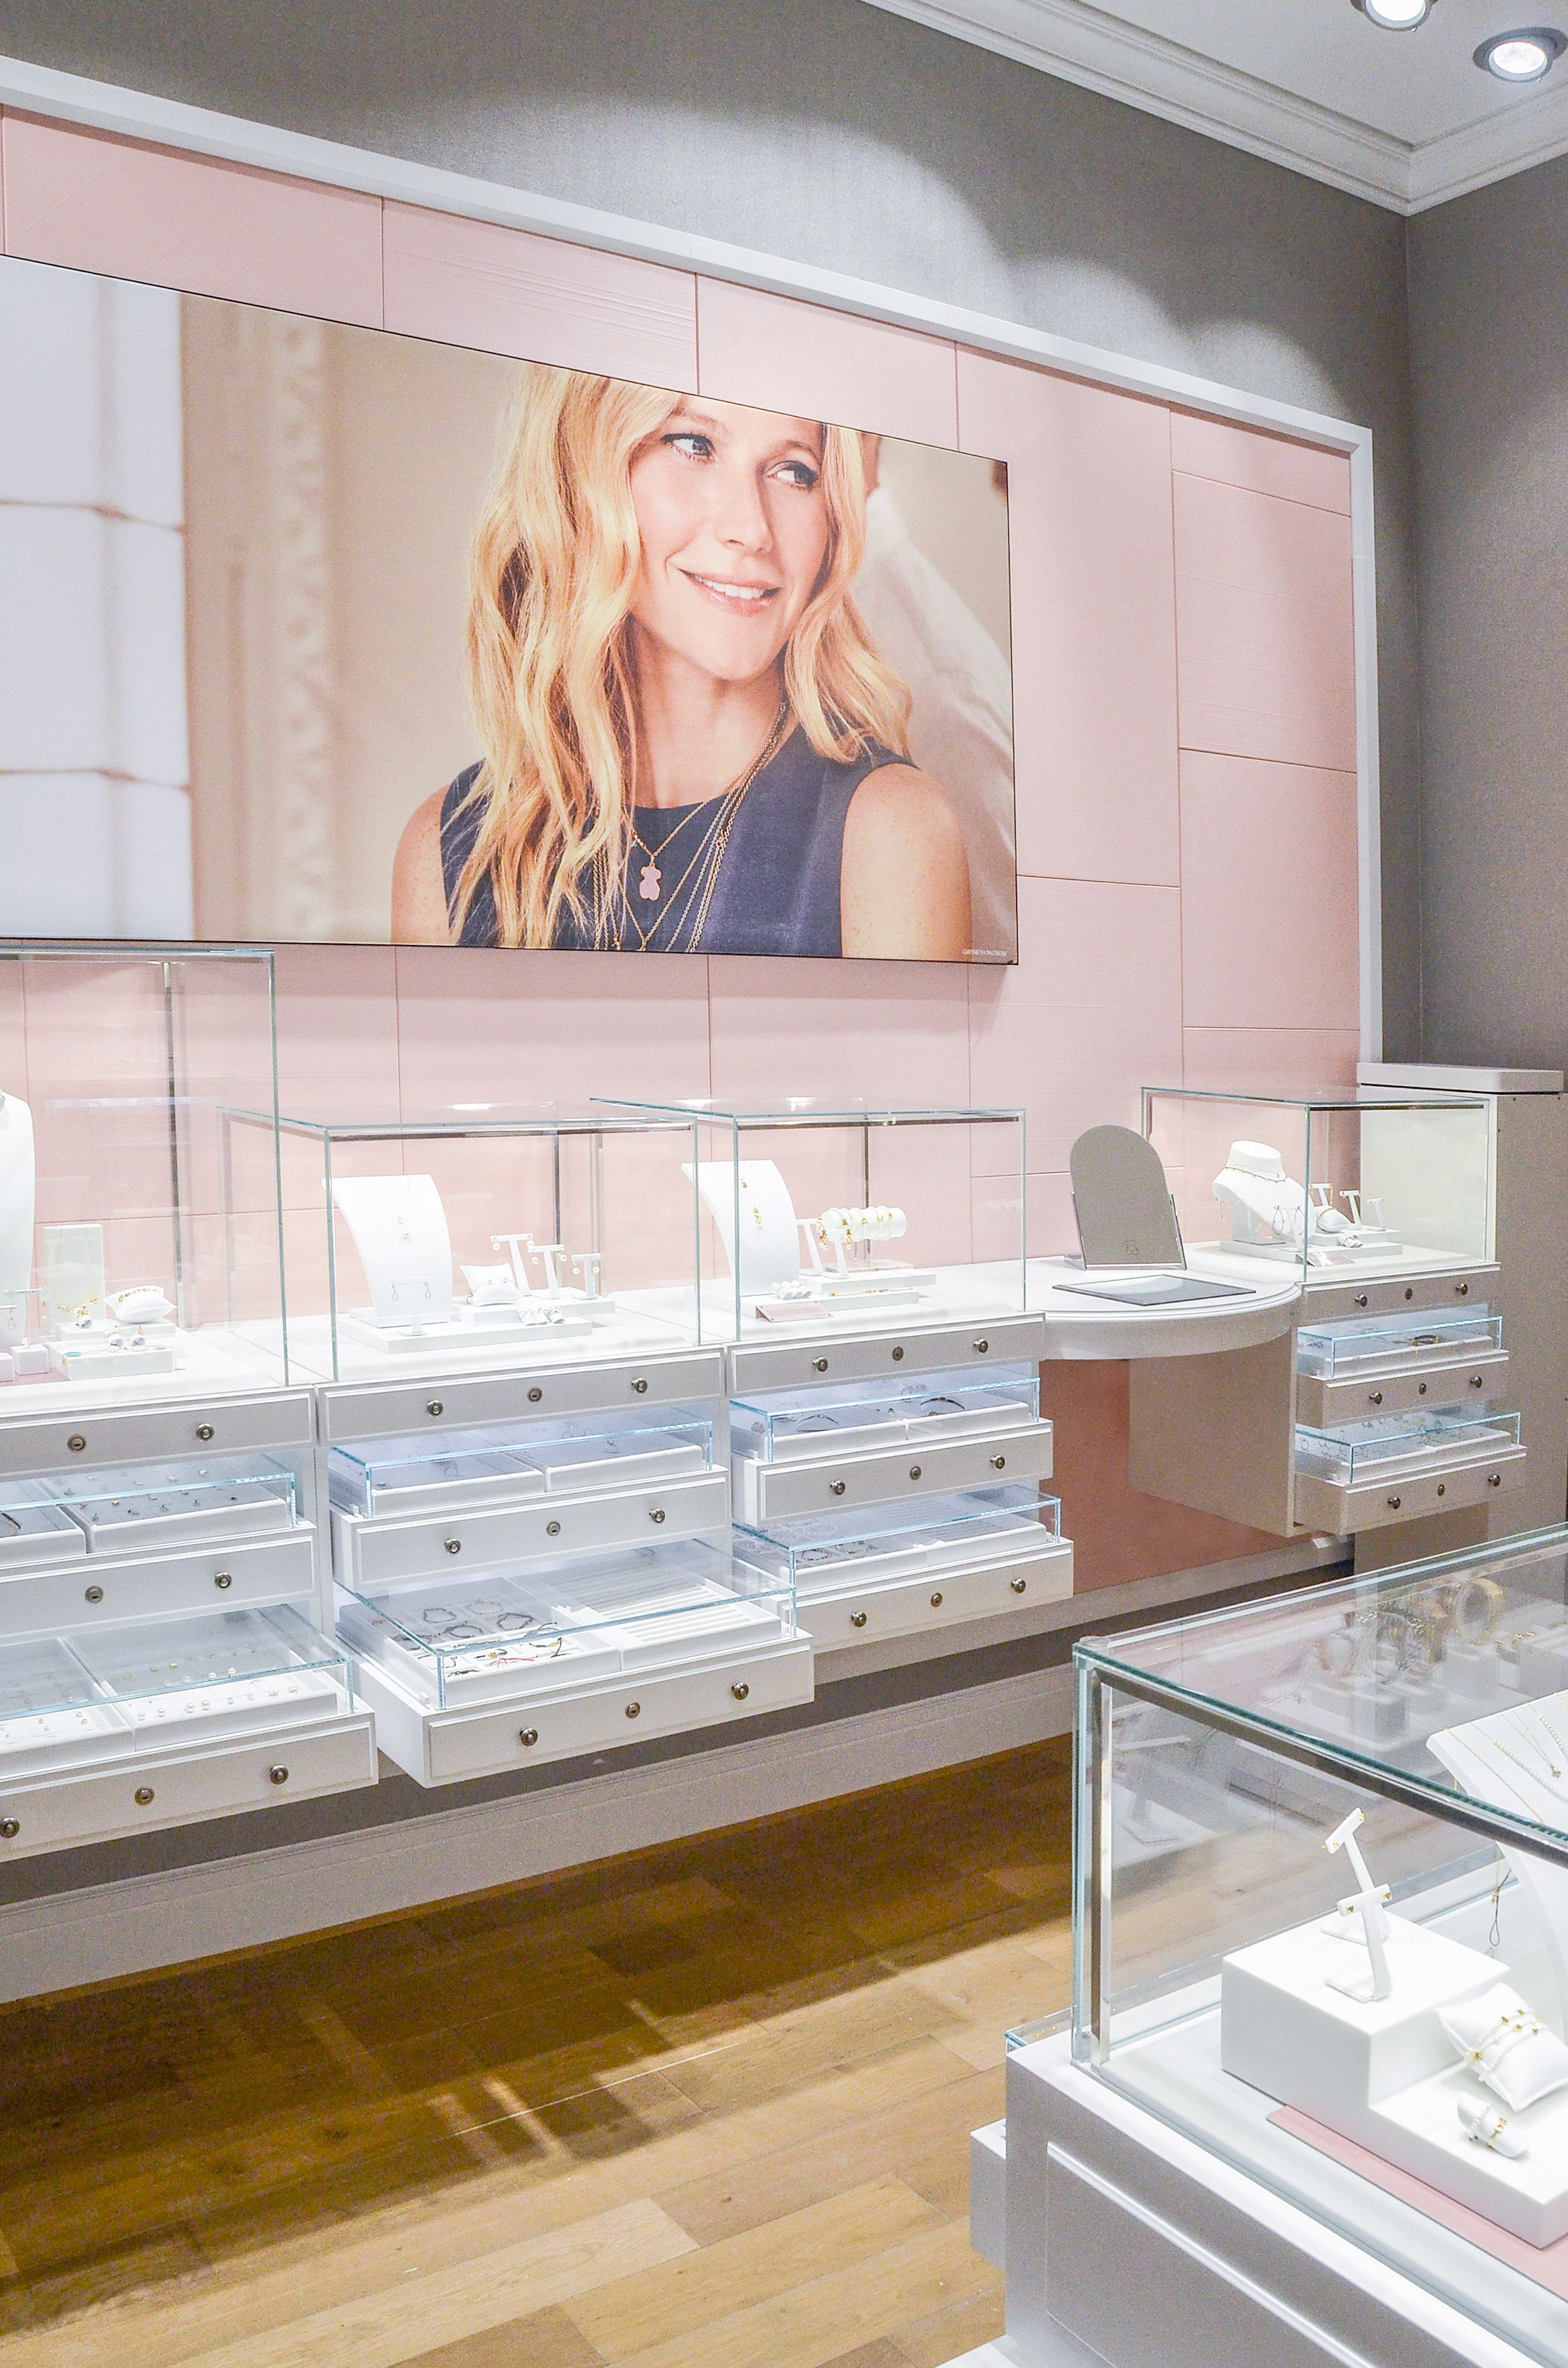 14+ Tous jewelry store near me viral